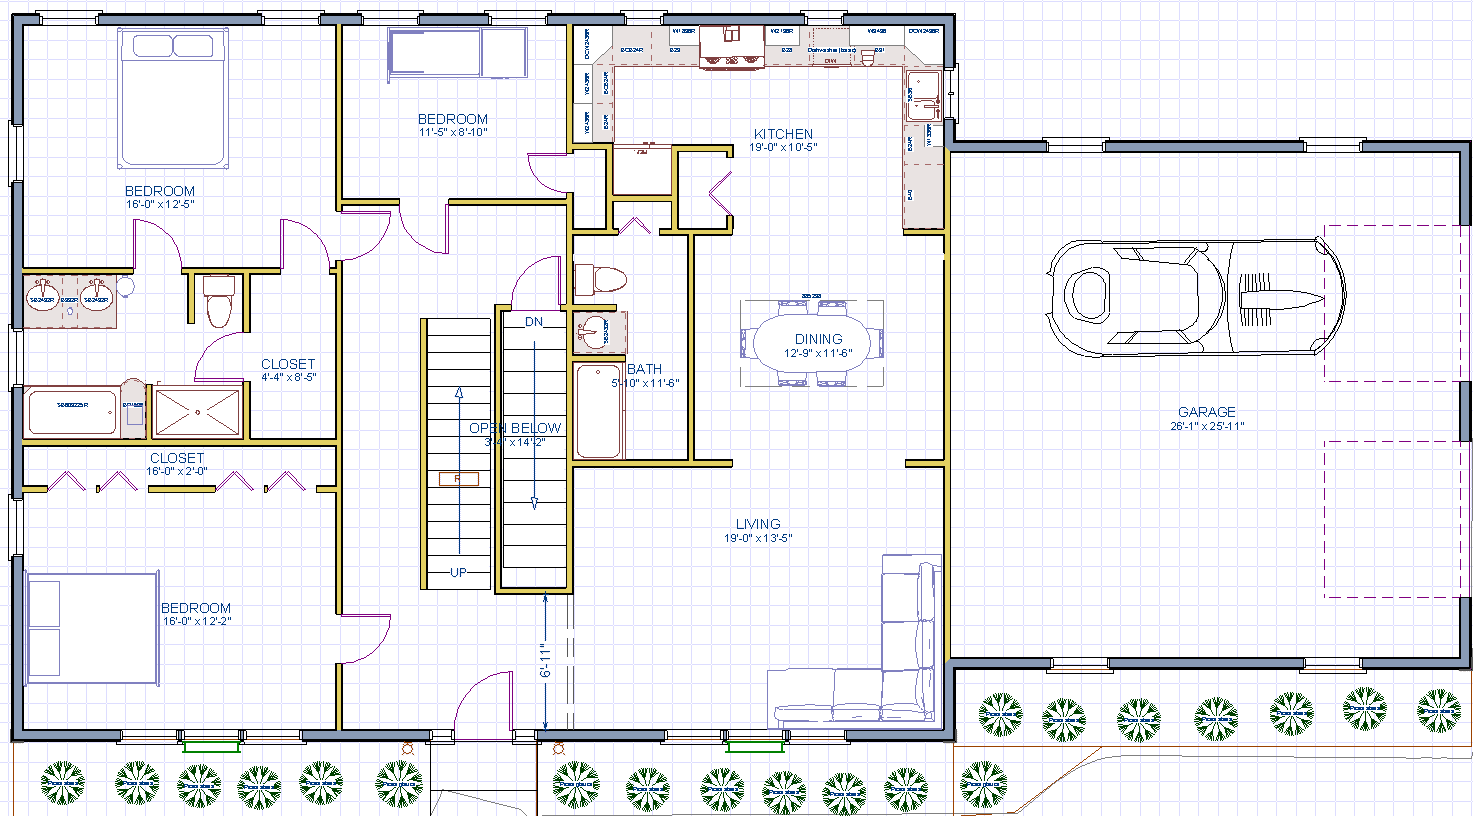 The new yorker cape house plan for Addition blueprints